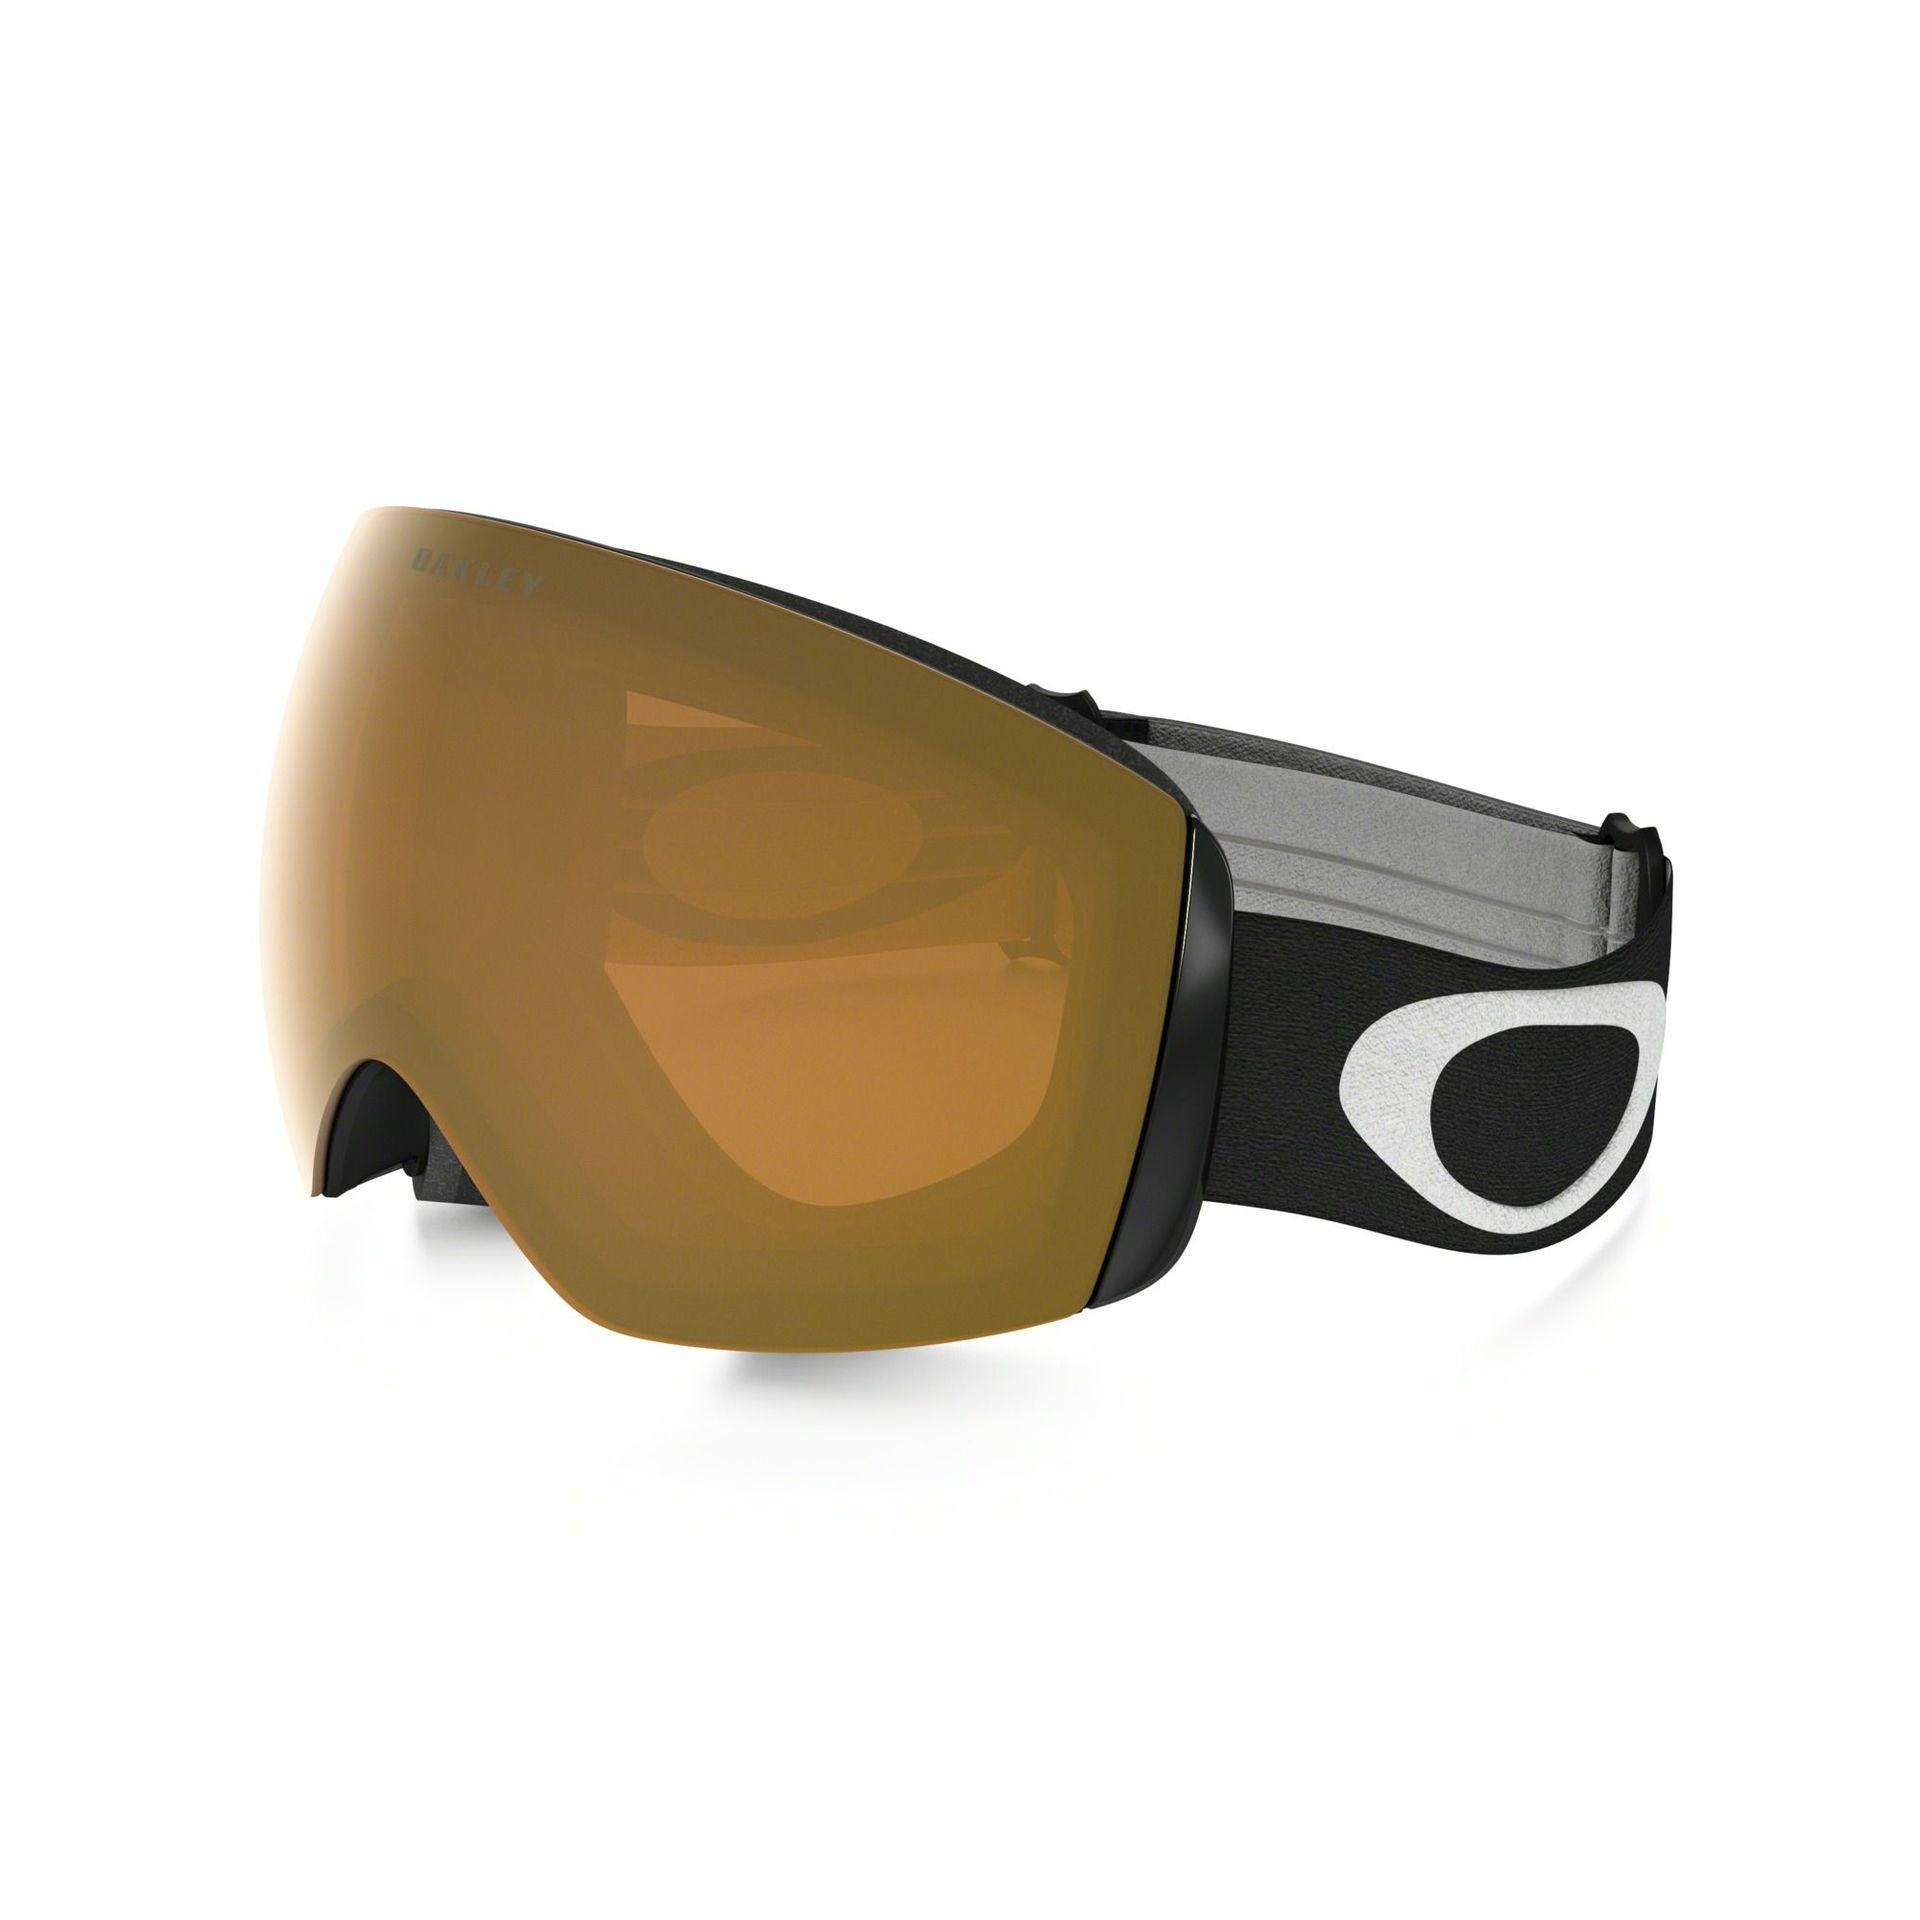 GOGLE OAKLEY FLIGHT DECK XM MATTE BLACK PERSIMMON